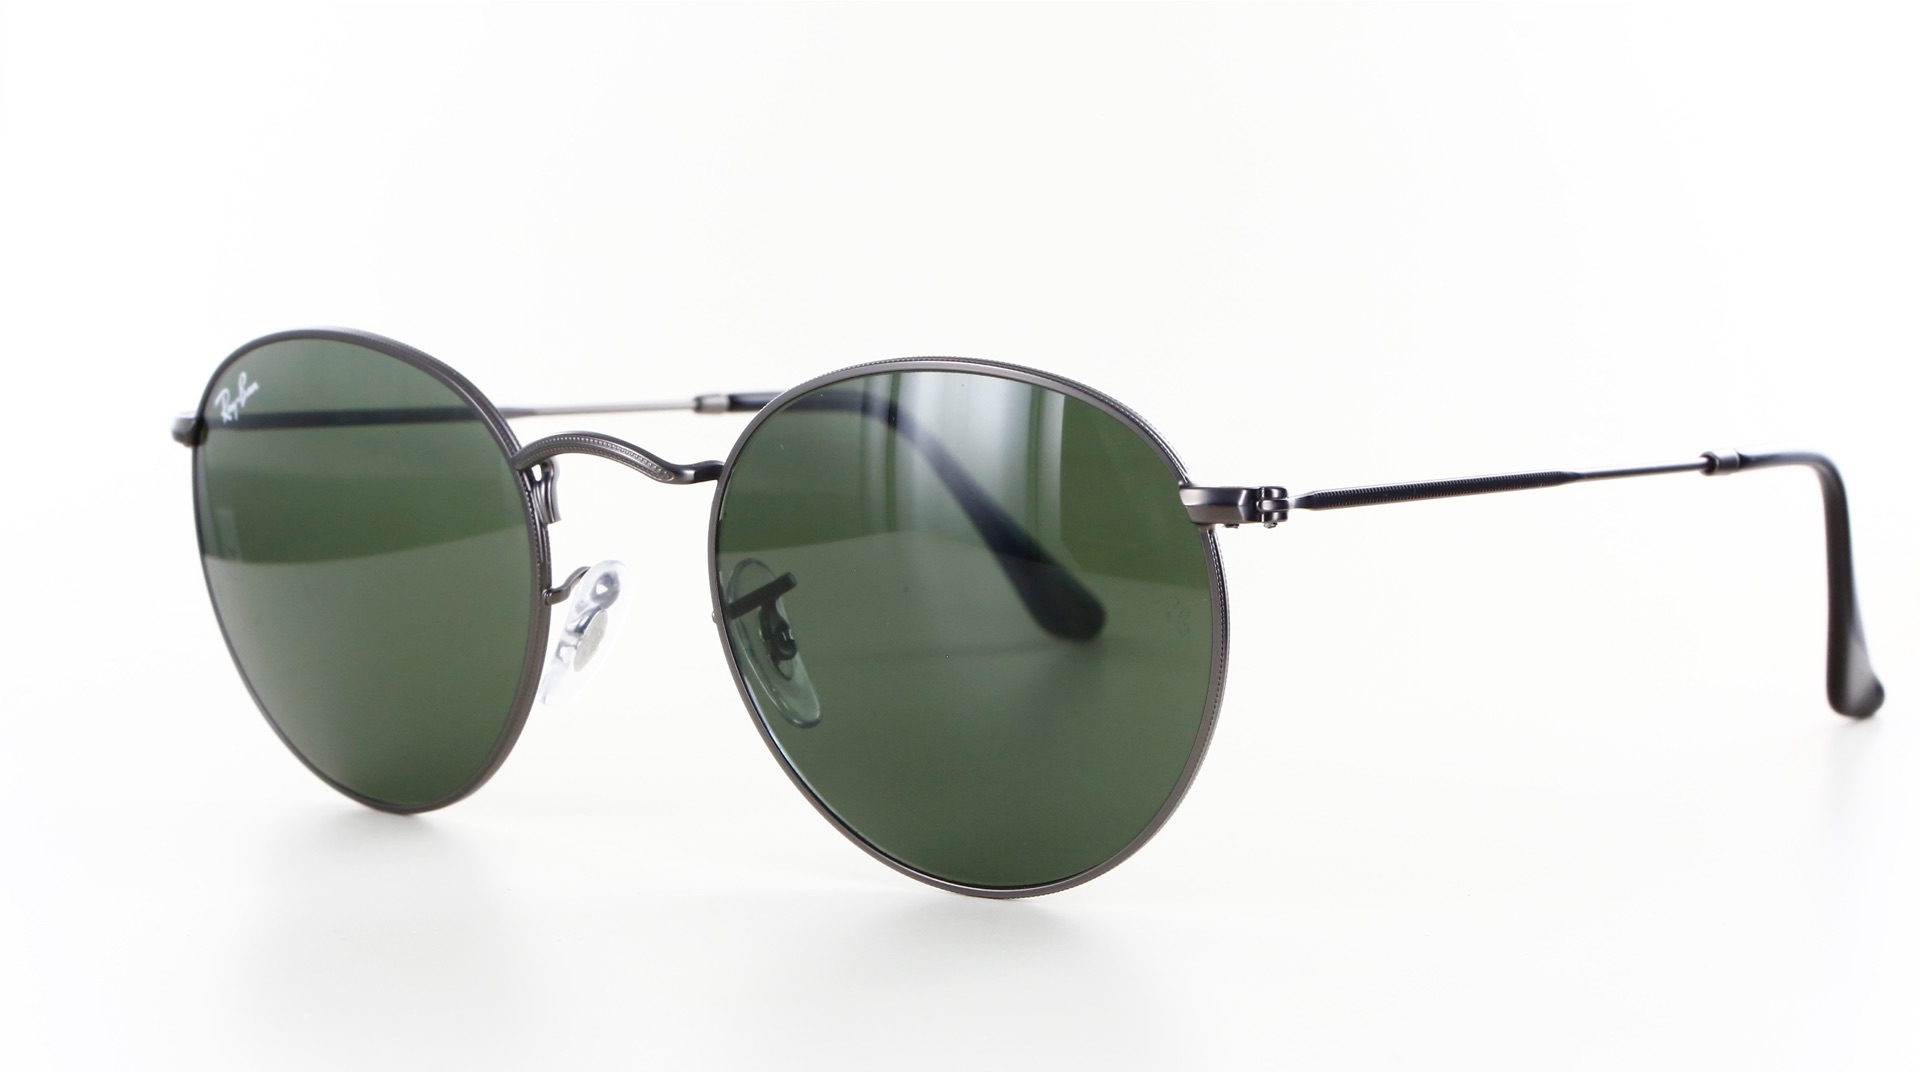 Ray-Ban - ref: 62838